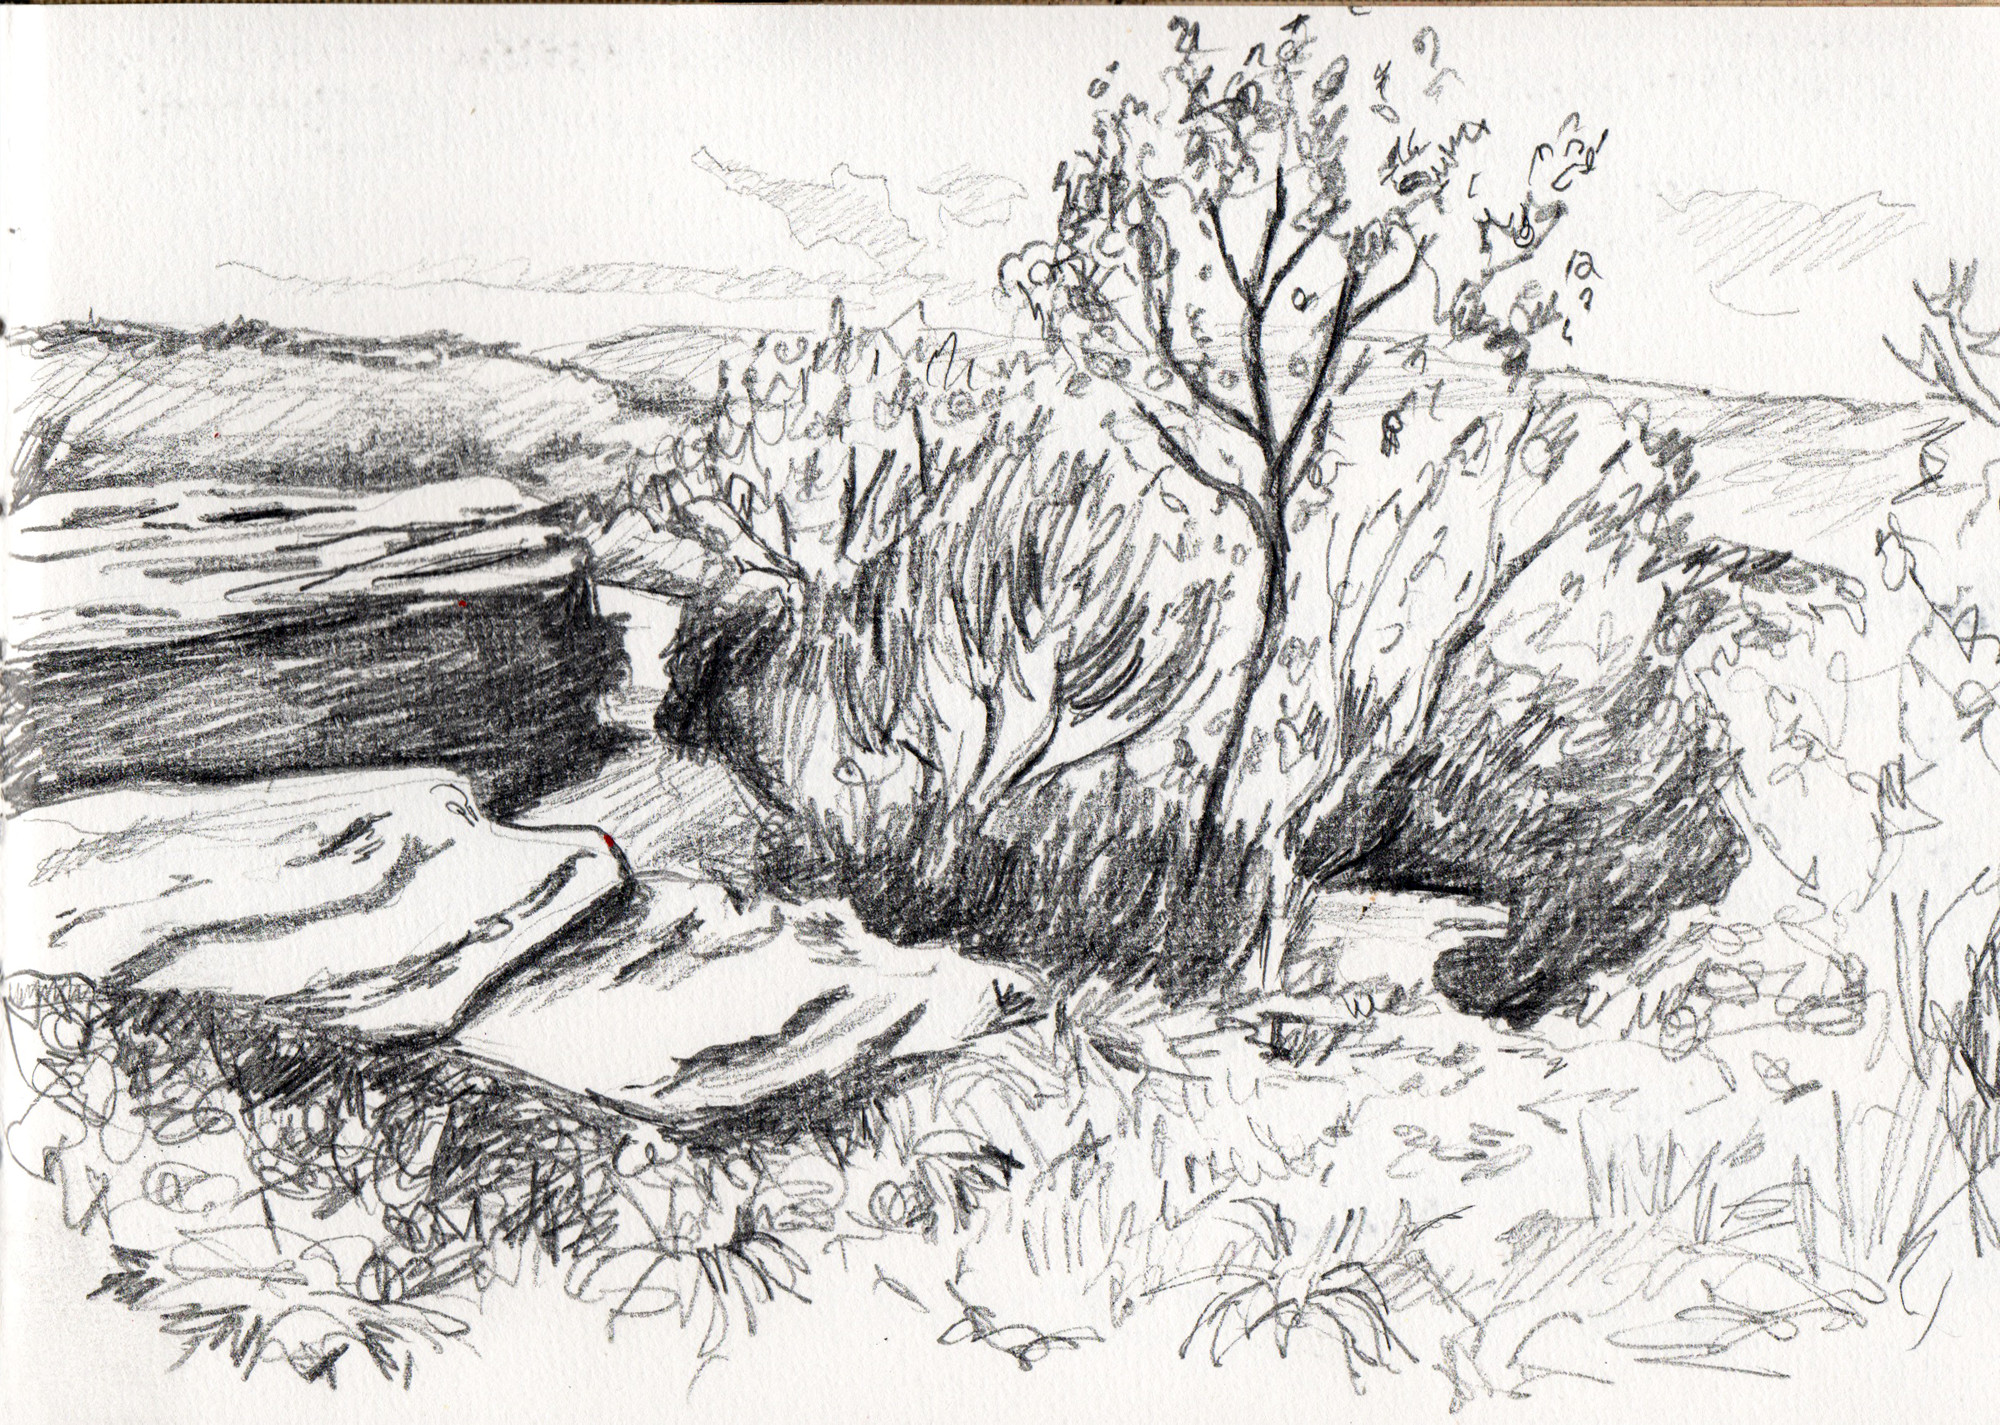 Drawing Texture - Landscape Sketches For Beginners - Pen ...